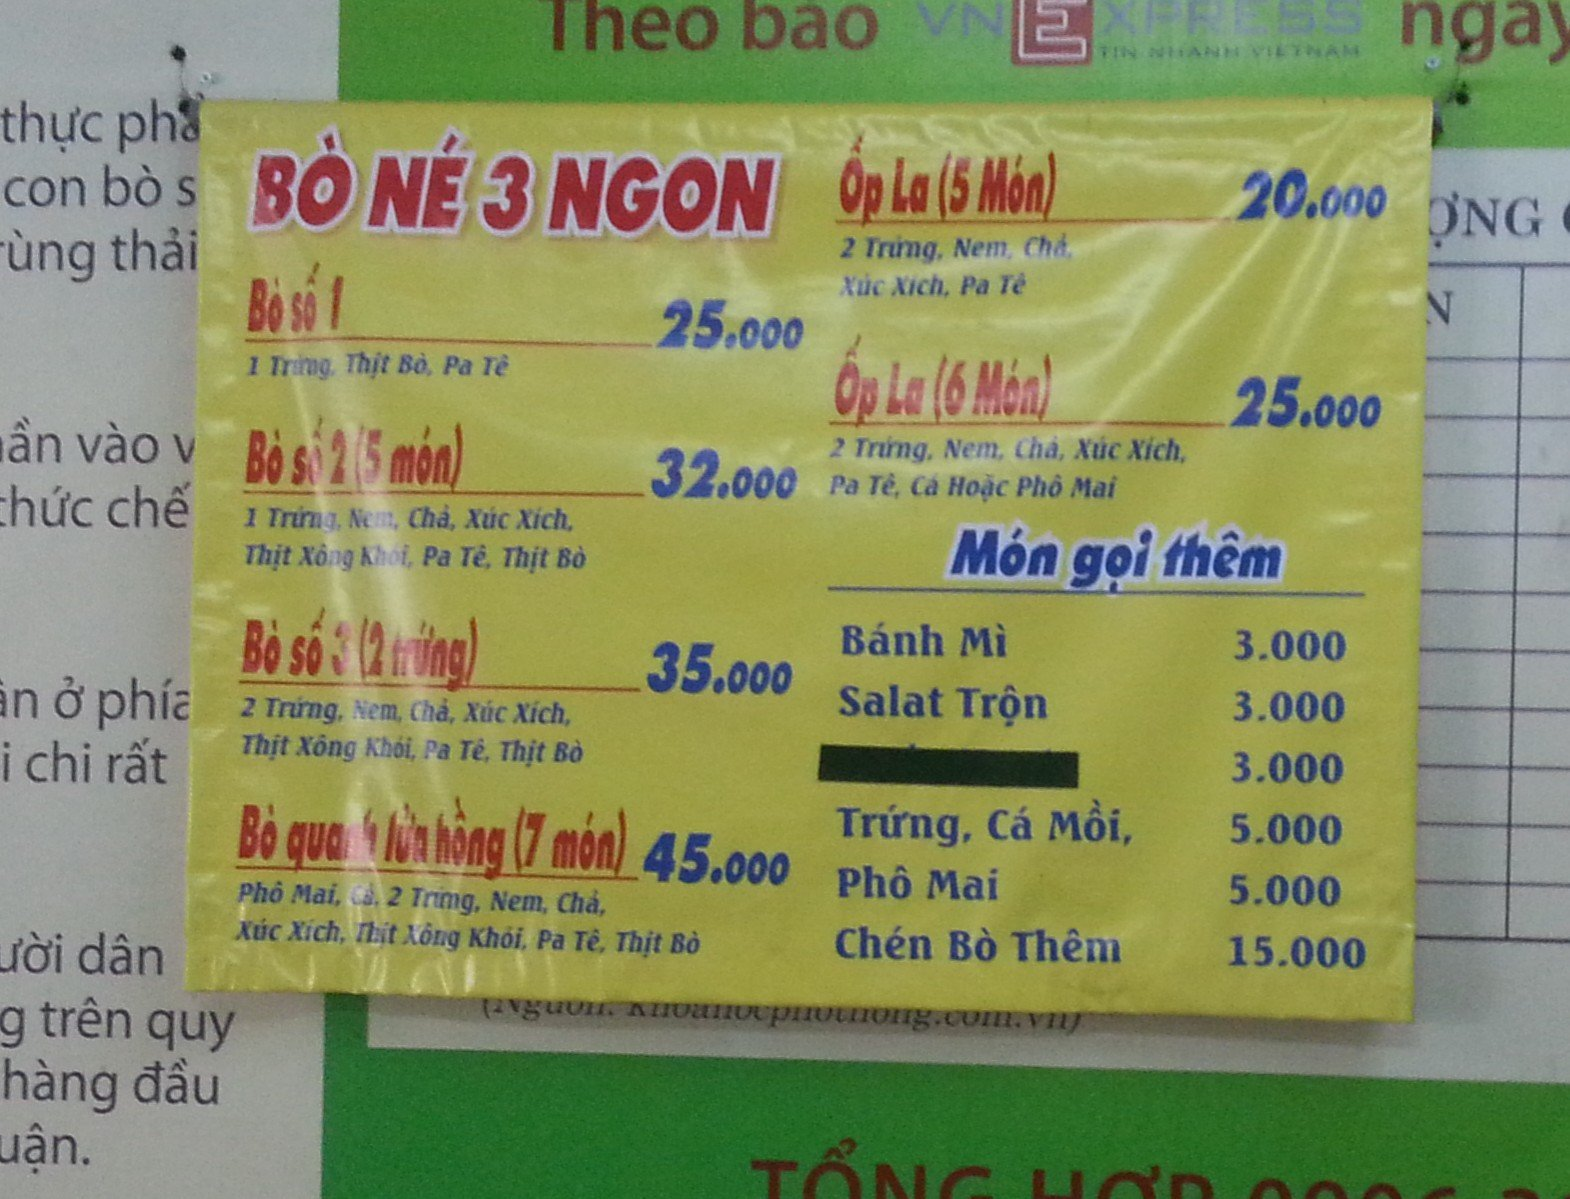 Bo ne 3 ngon is cheap in Vietnam